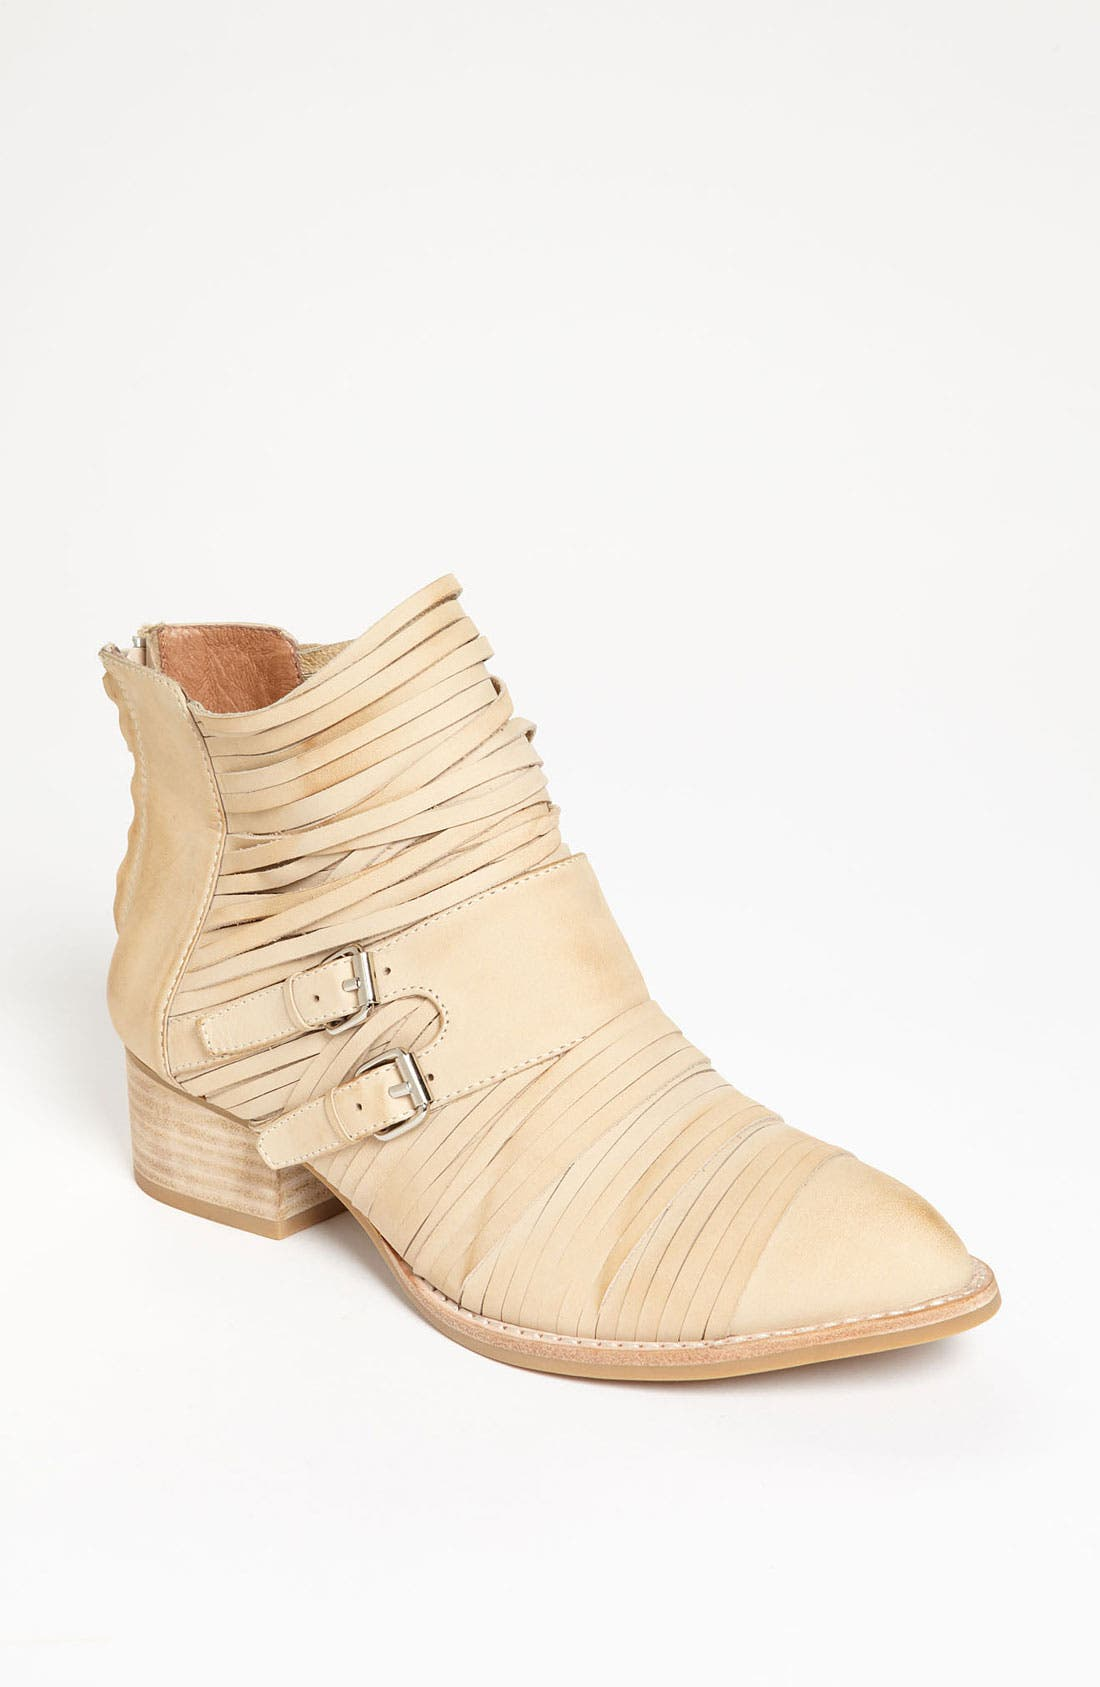 Alternate Image 1 Selected - Jeffrey Campbell 'Isley' Ankle Boot